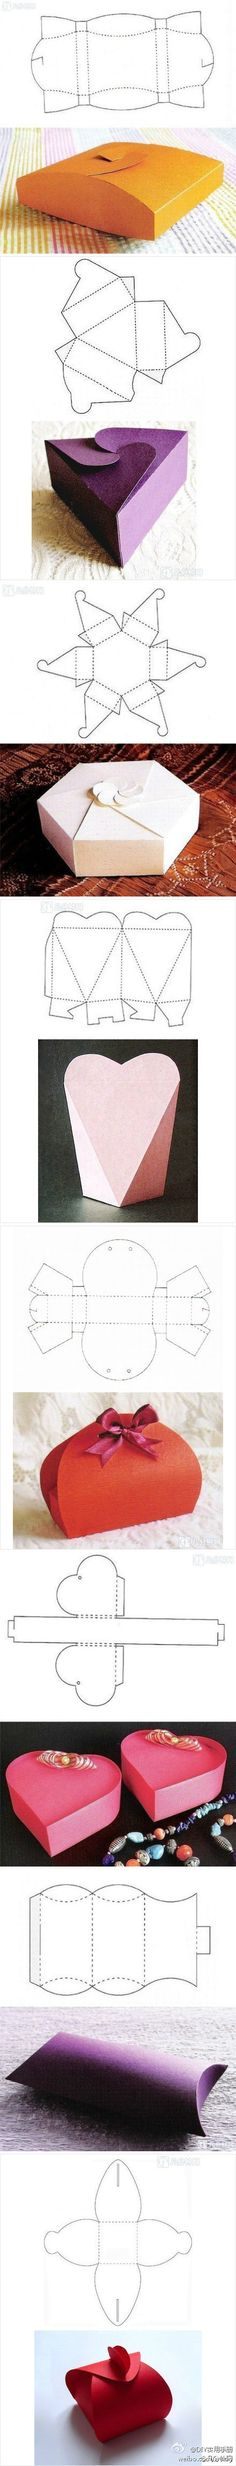 cool box ideas, fold and cut